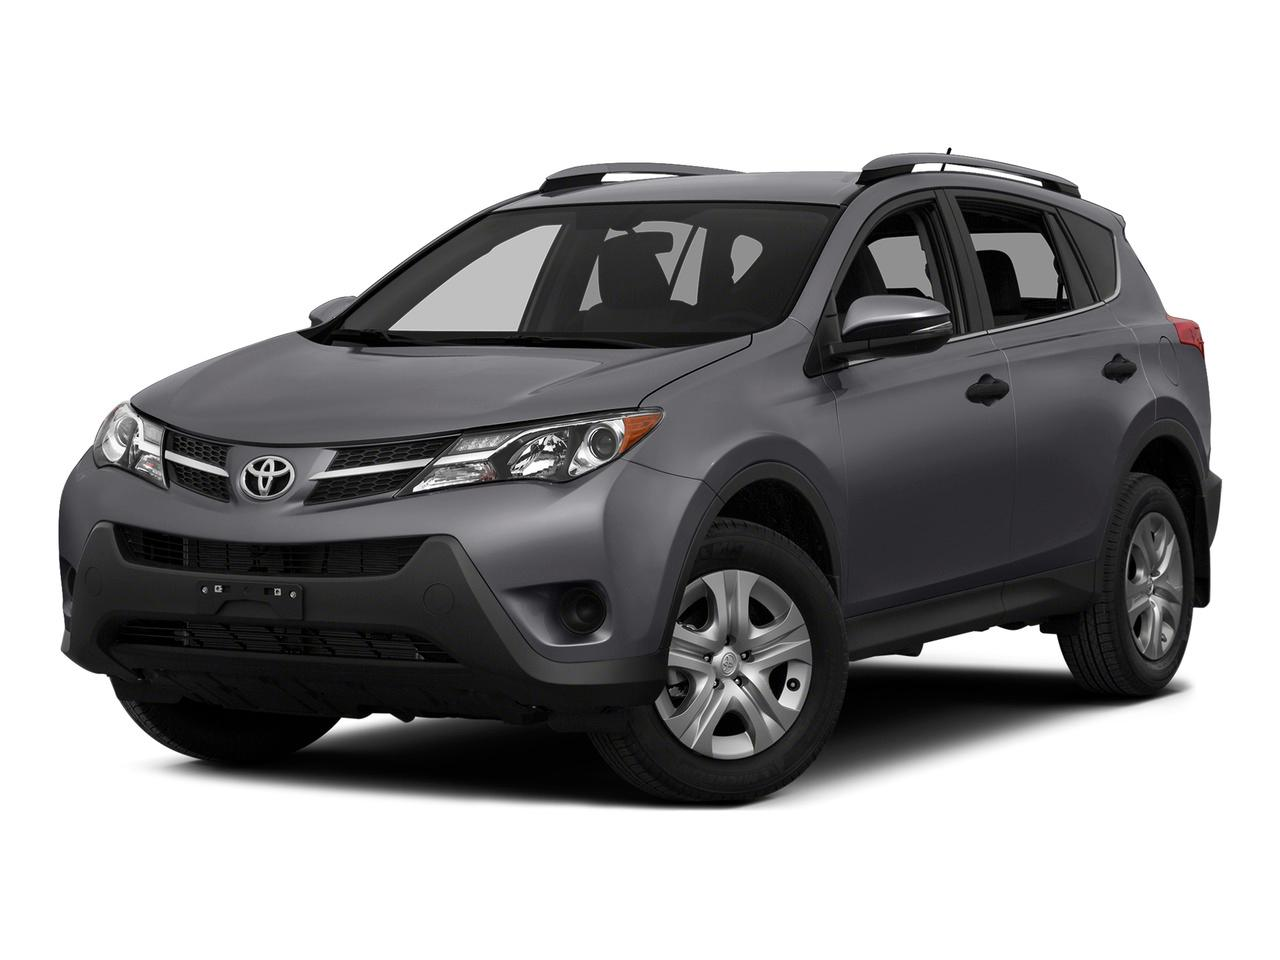 2015 Toyota RAV4 Vehicle Photo in Leominster, MA 01453